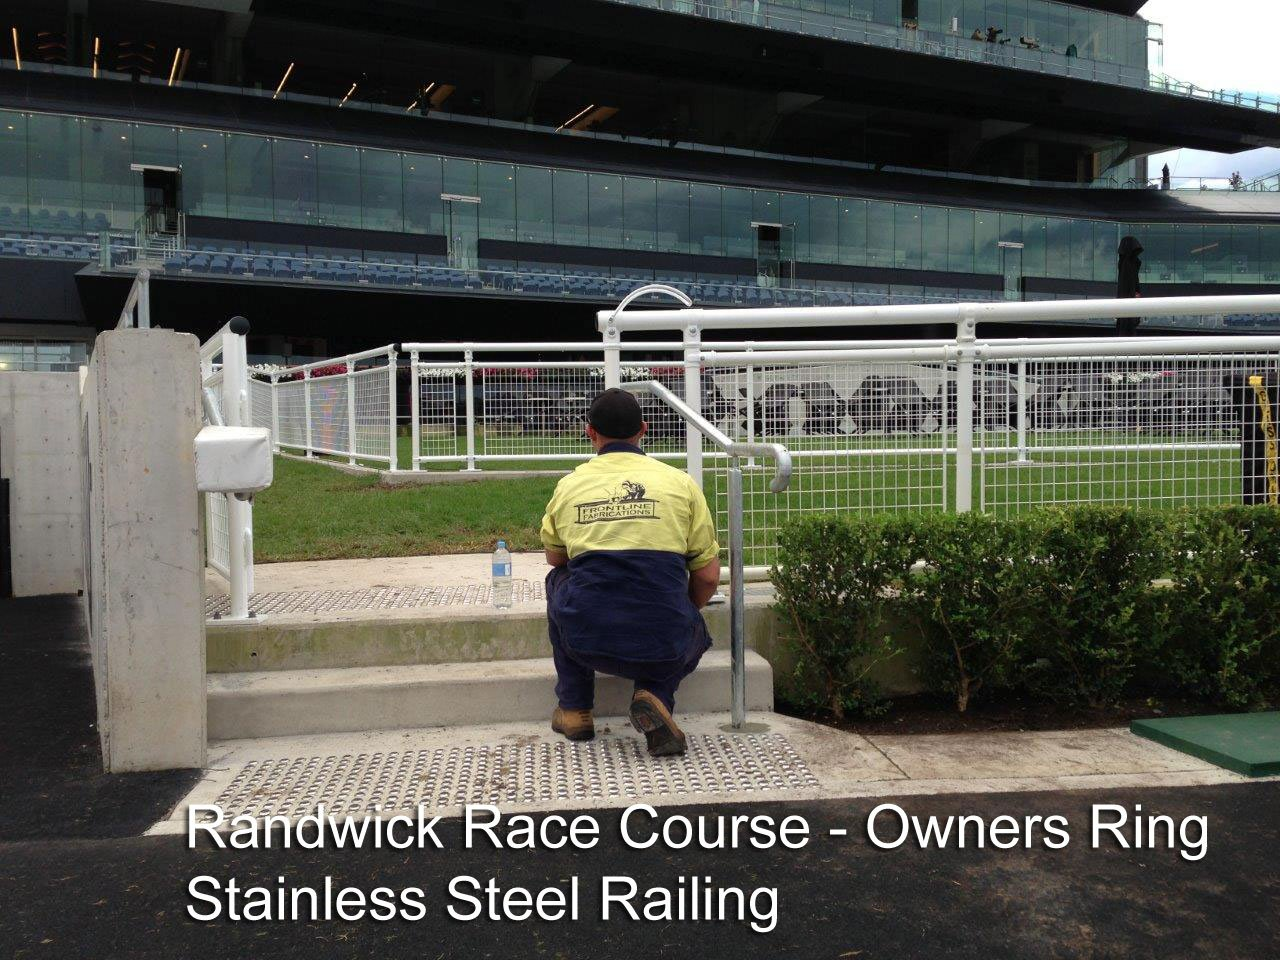 randwick-race-course-owners-ring-railing